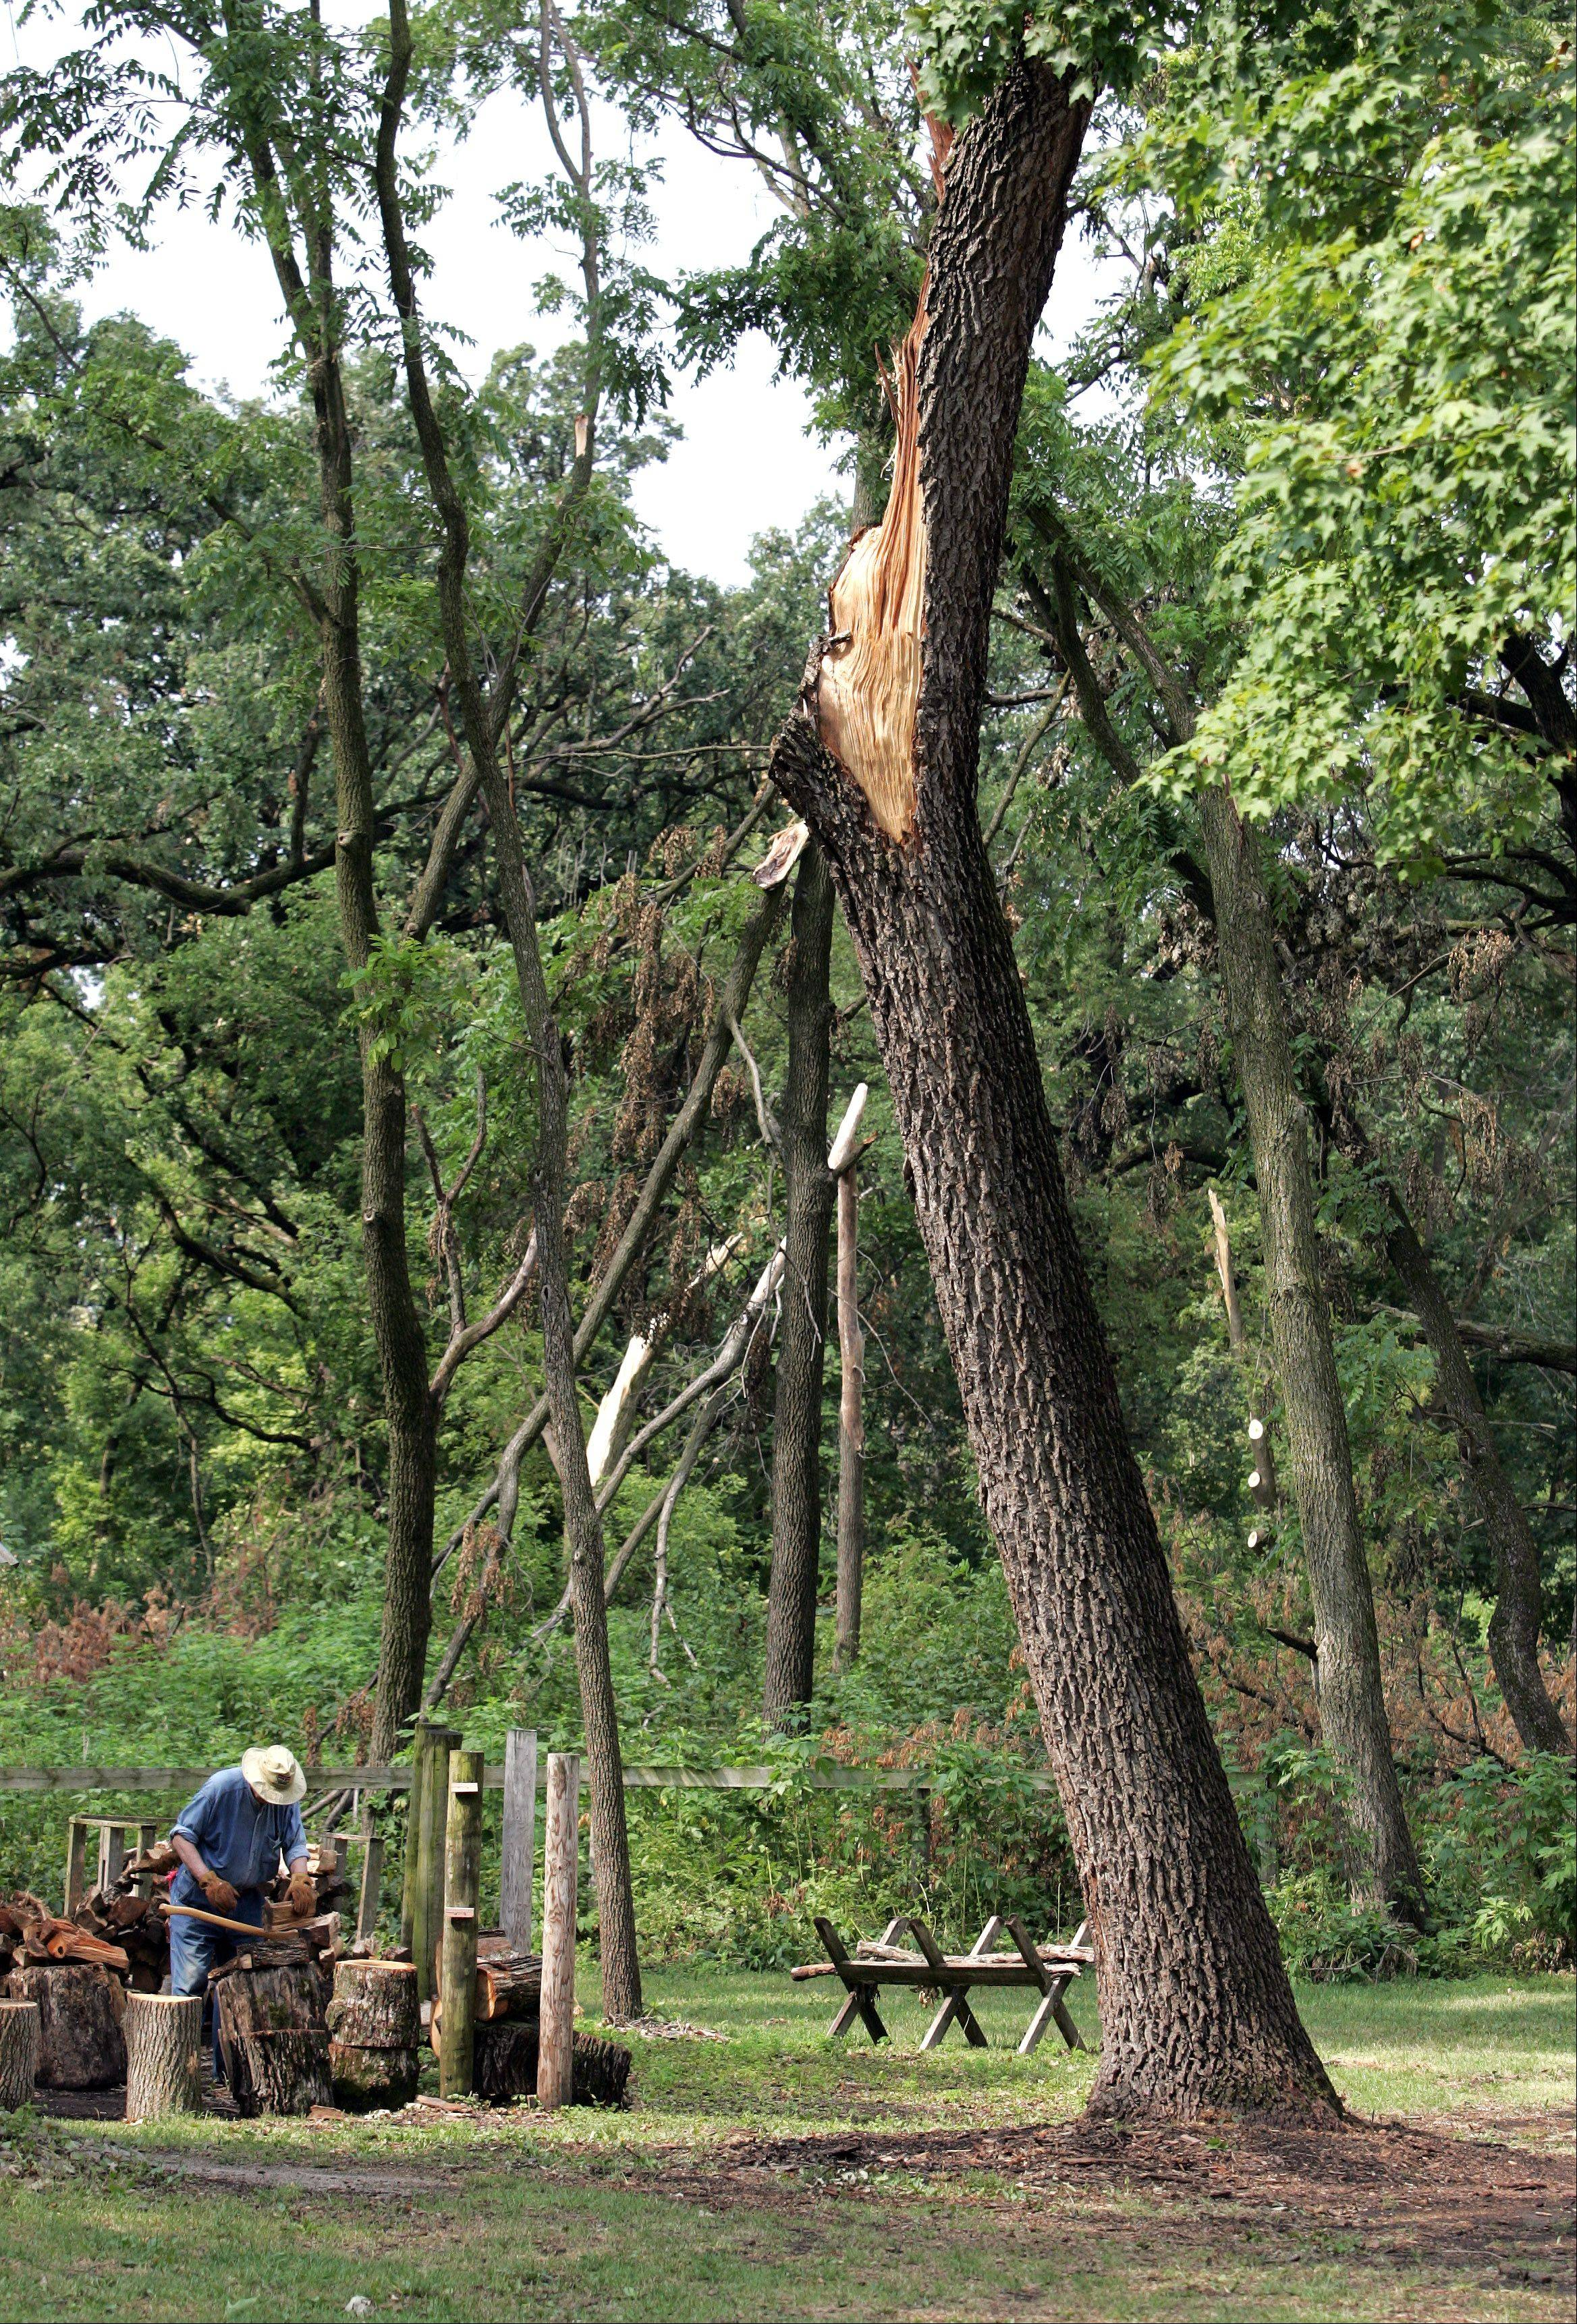 Several trees were knocked down or severely damaged at Kline Creek Farm near West Chicago during the July 1 storm. Volunteers helped with the recovery at the 1890s living-history site, and now officials hope they will collectively donate more than $4,100 to help repair the farm's signature windmill.